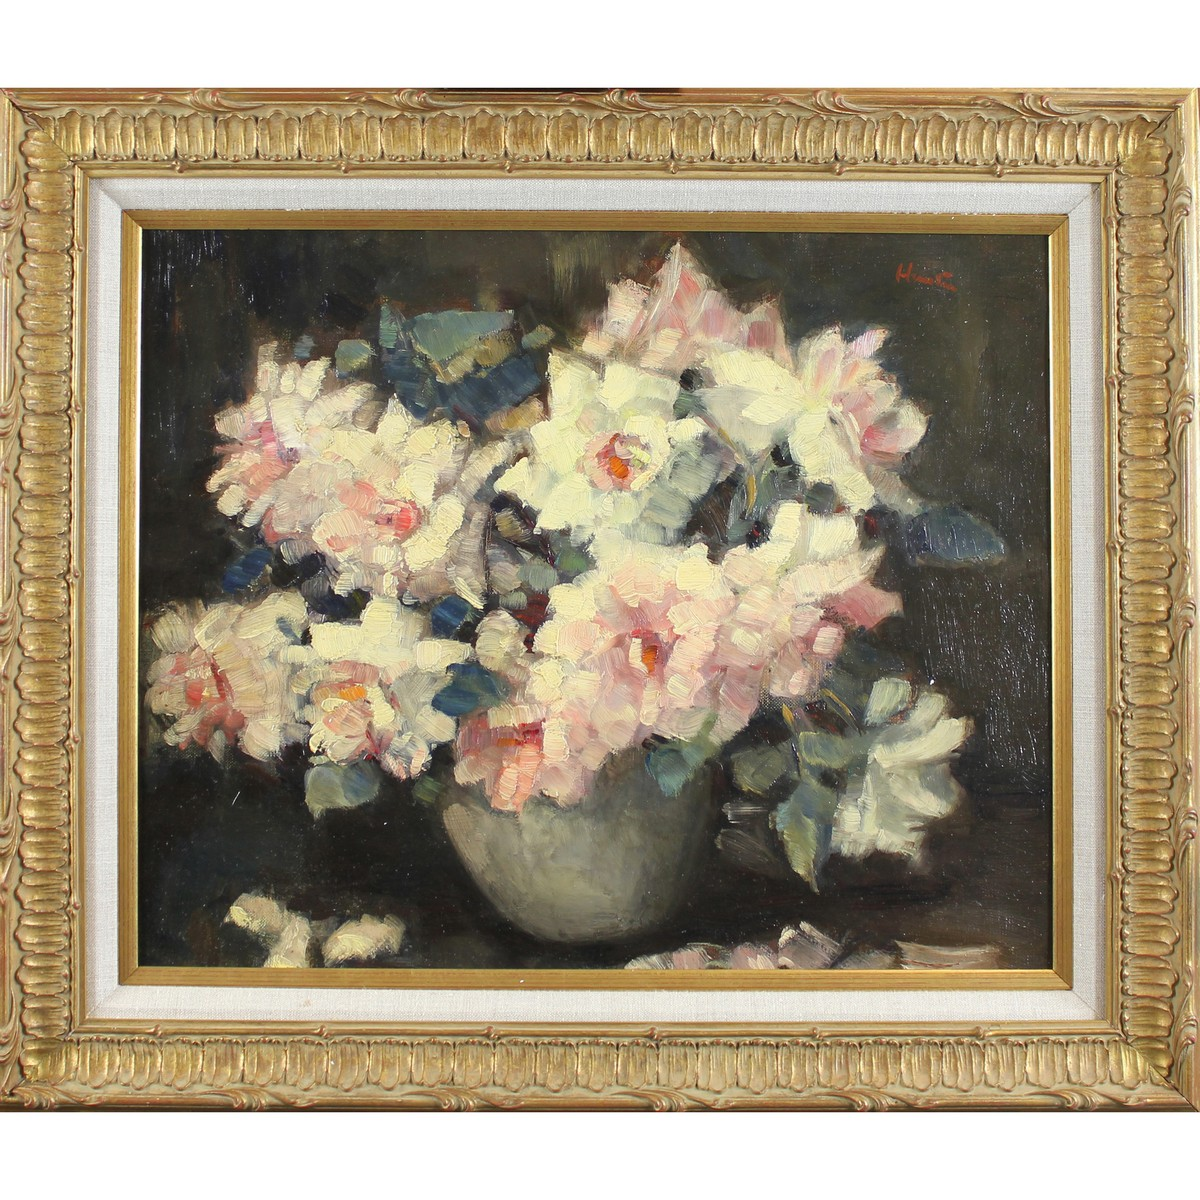 Lot 8 - Hunter Early Twentieth Century British Still Life